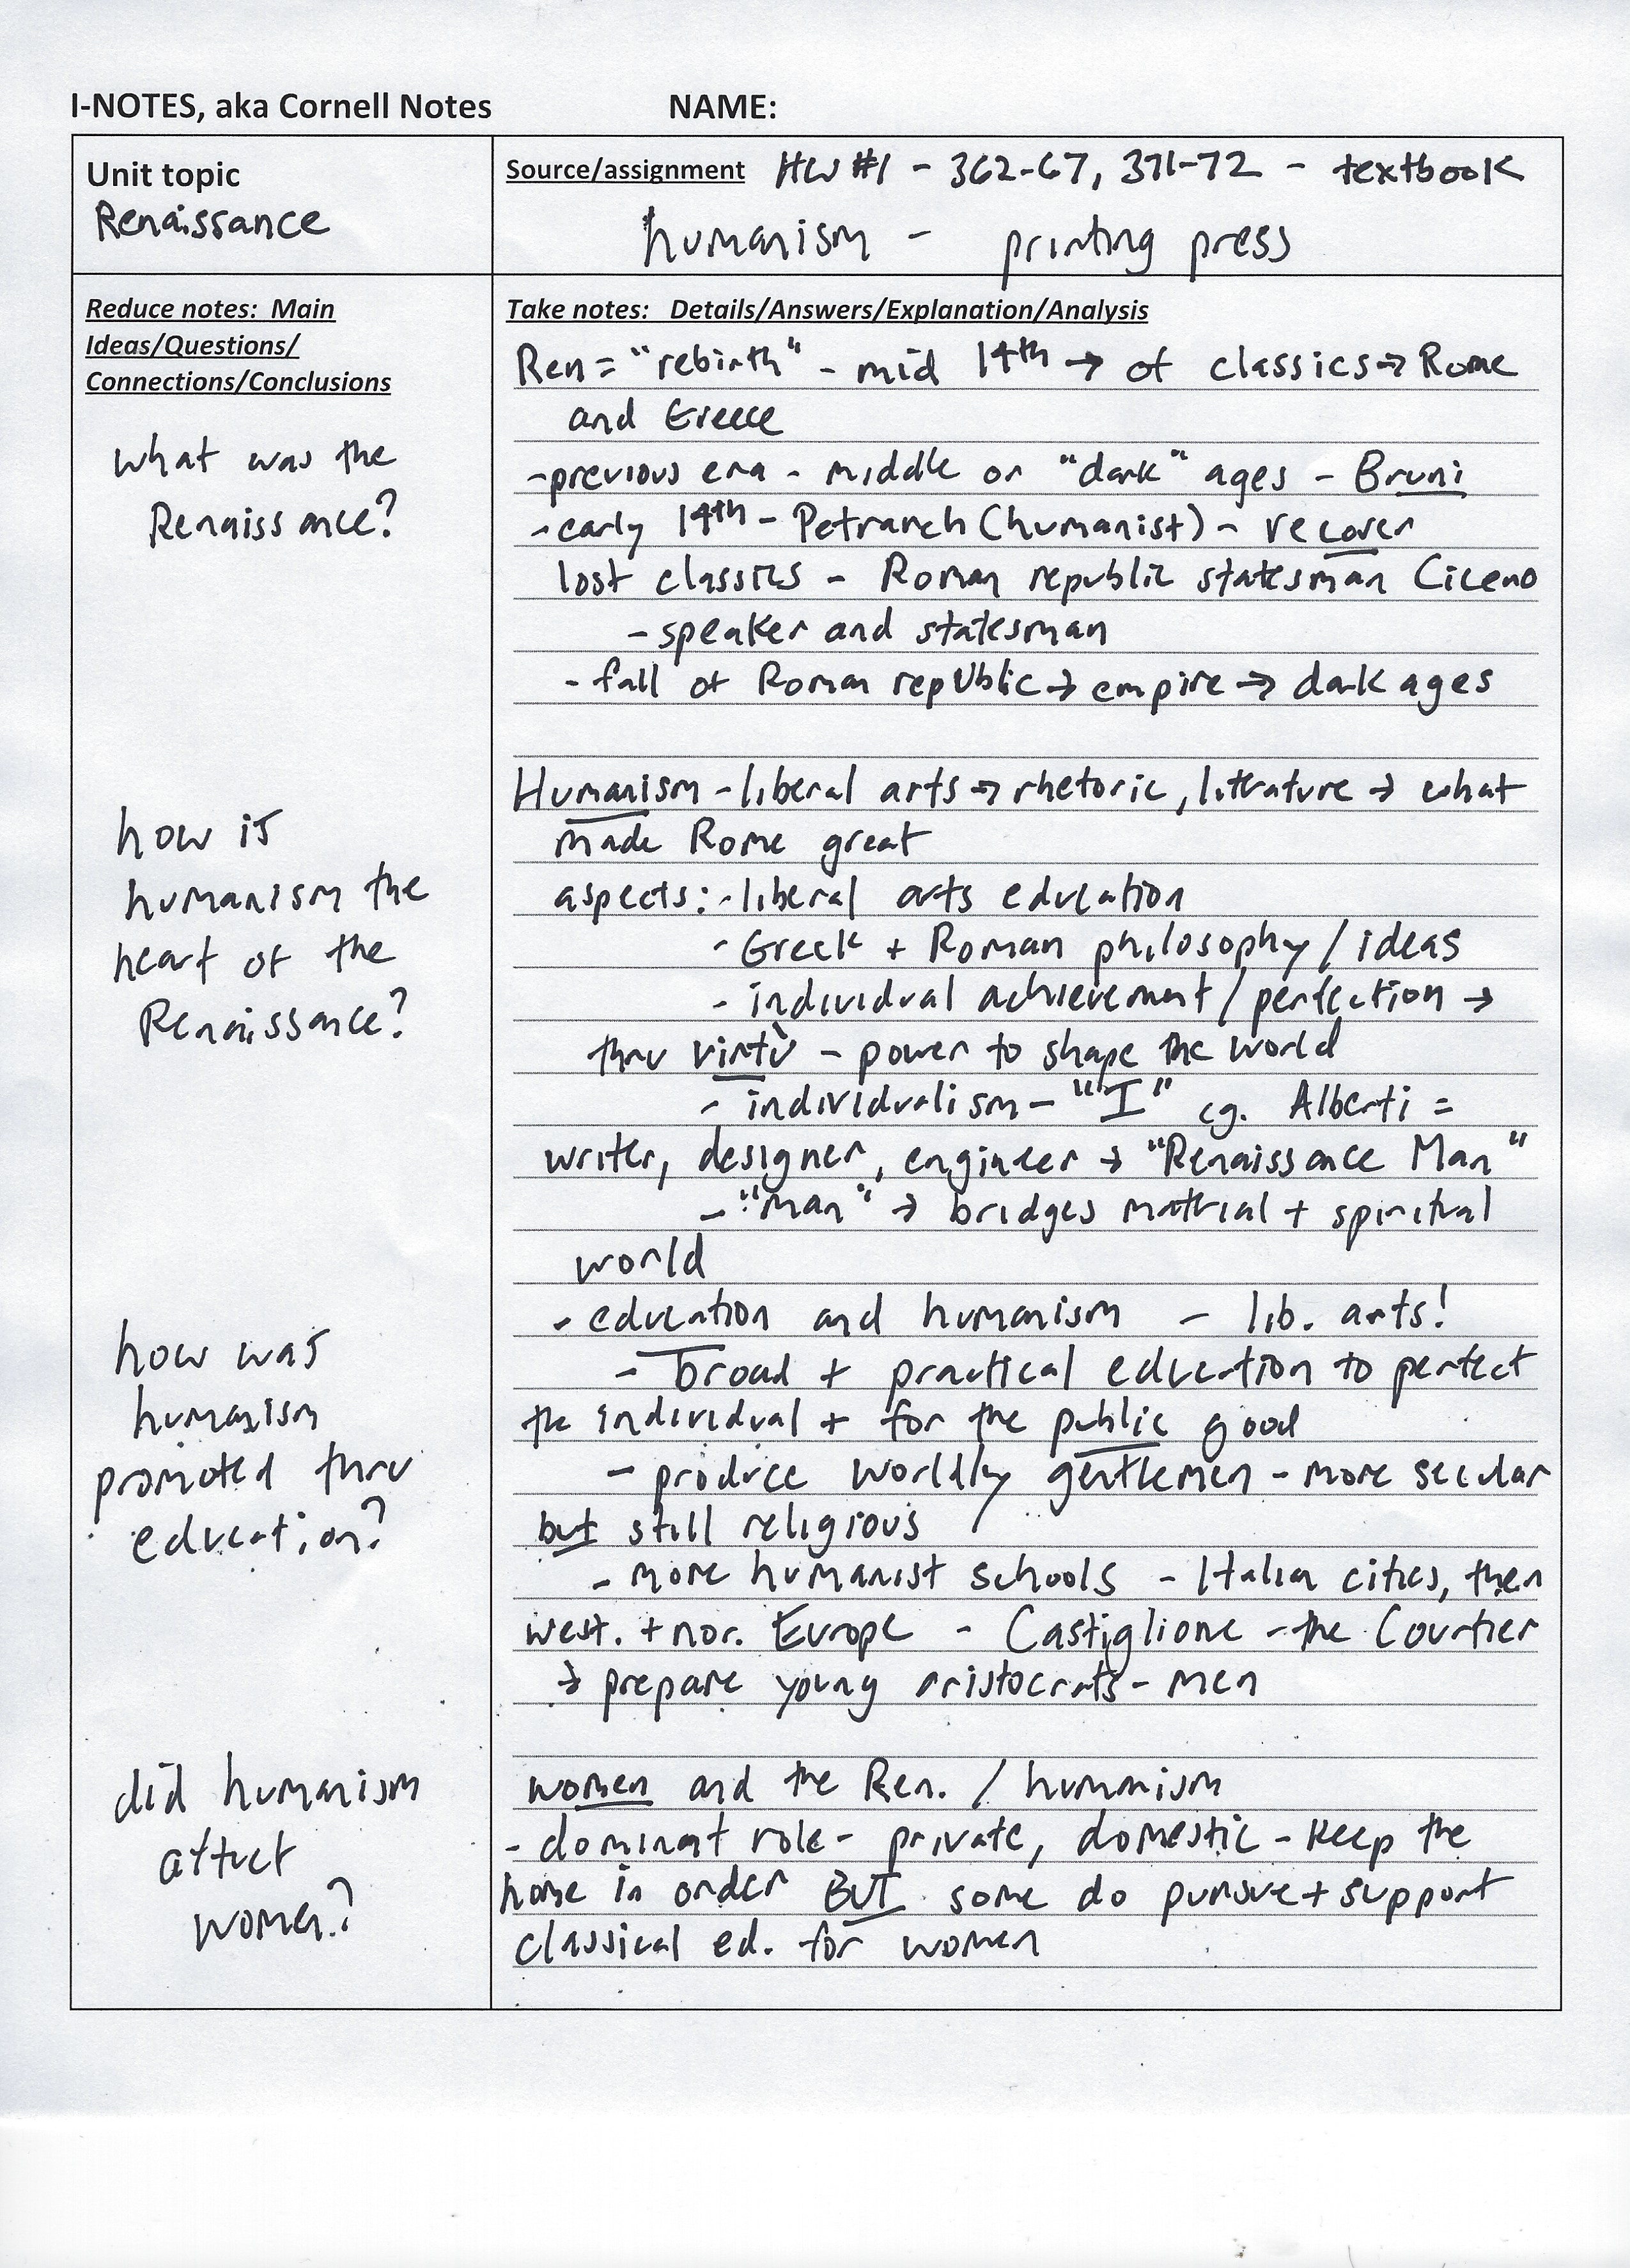 Cornell Notes Page 1